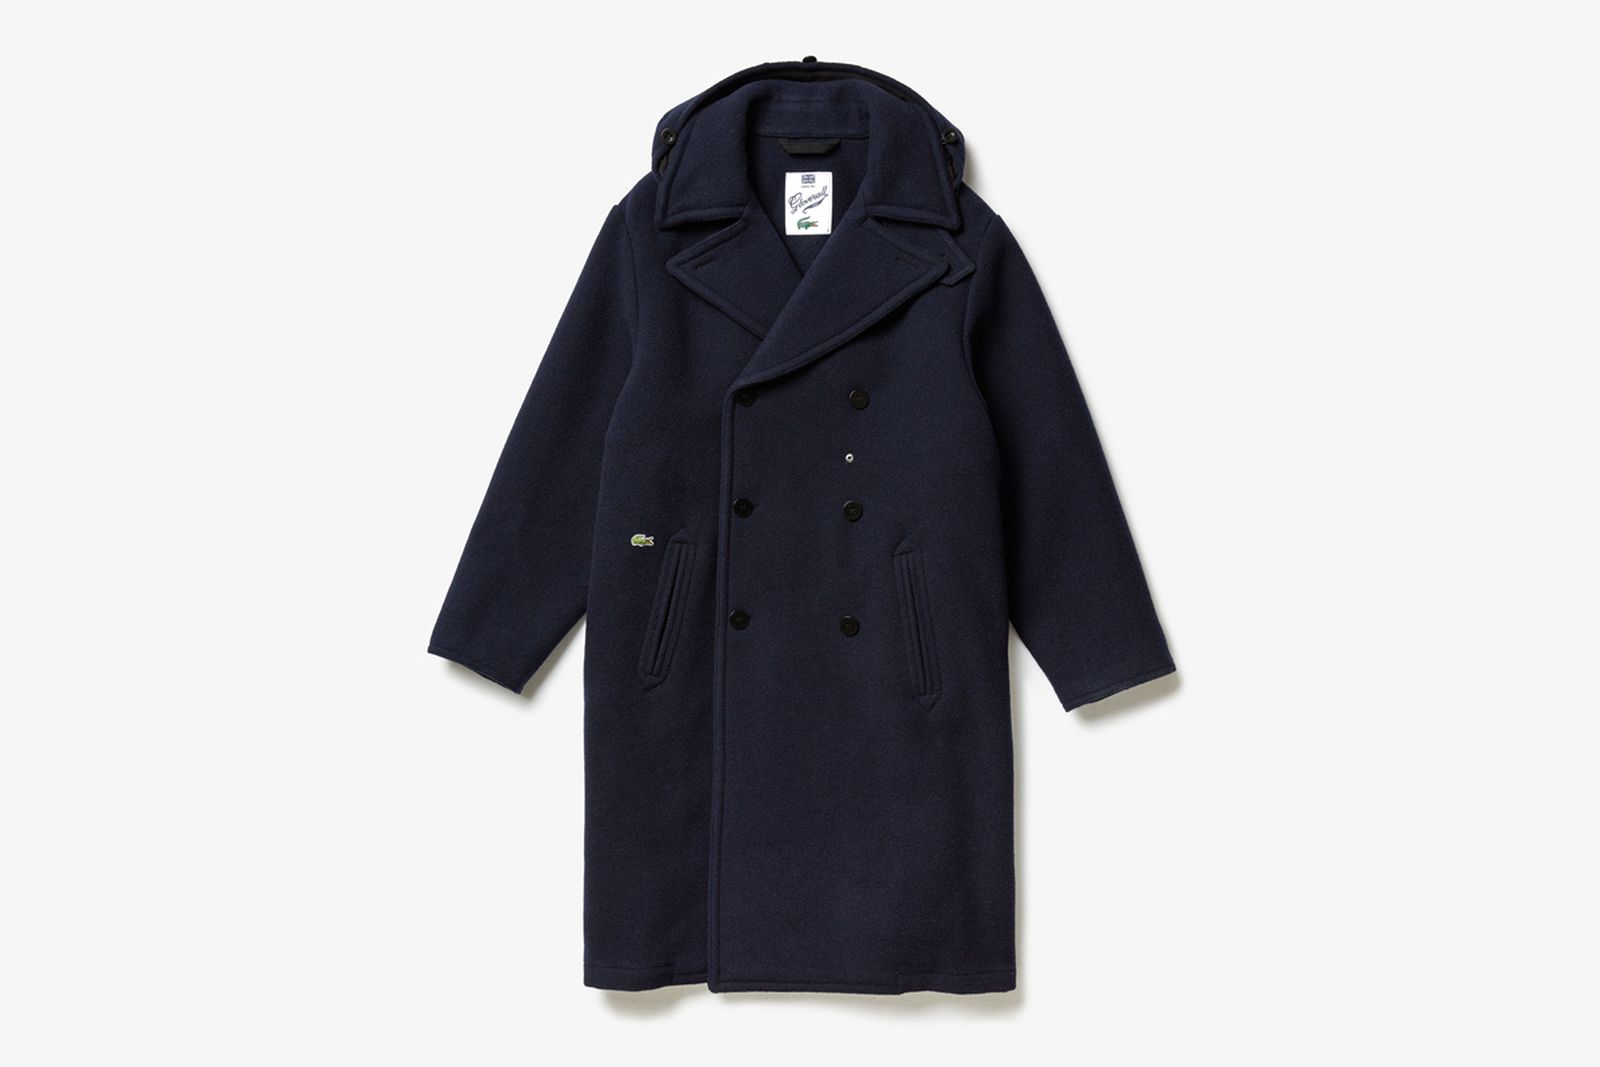 lacoste winter icons Gloverall Alpha Industries k-way pyrenex